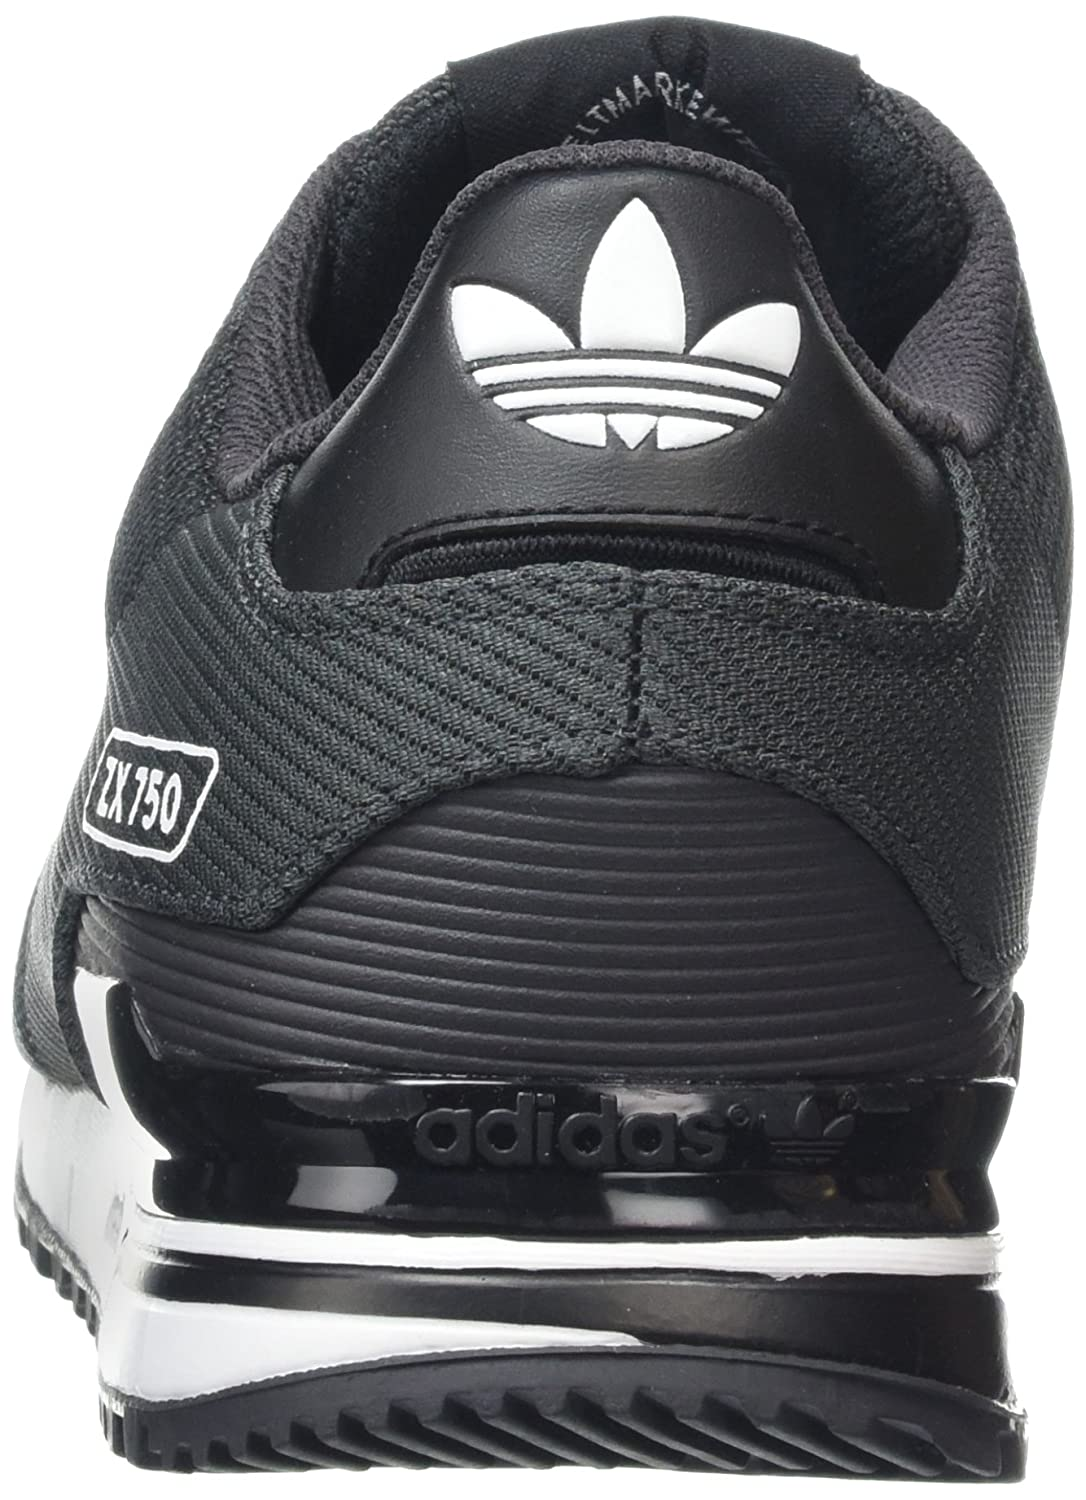 d29767e8f2dad ... usa adidas mens zx 750 woven low top sneakers shadow core black ftwr  white 12 uk